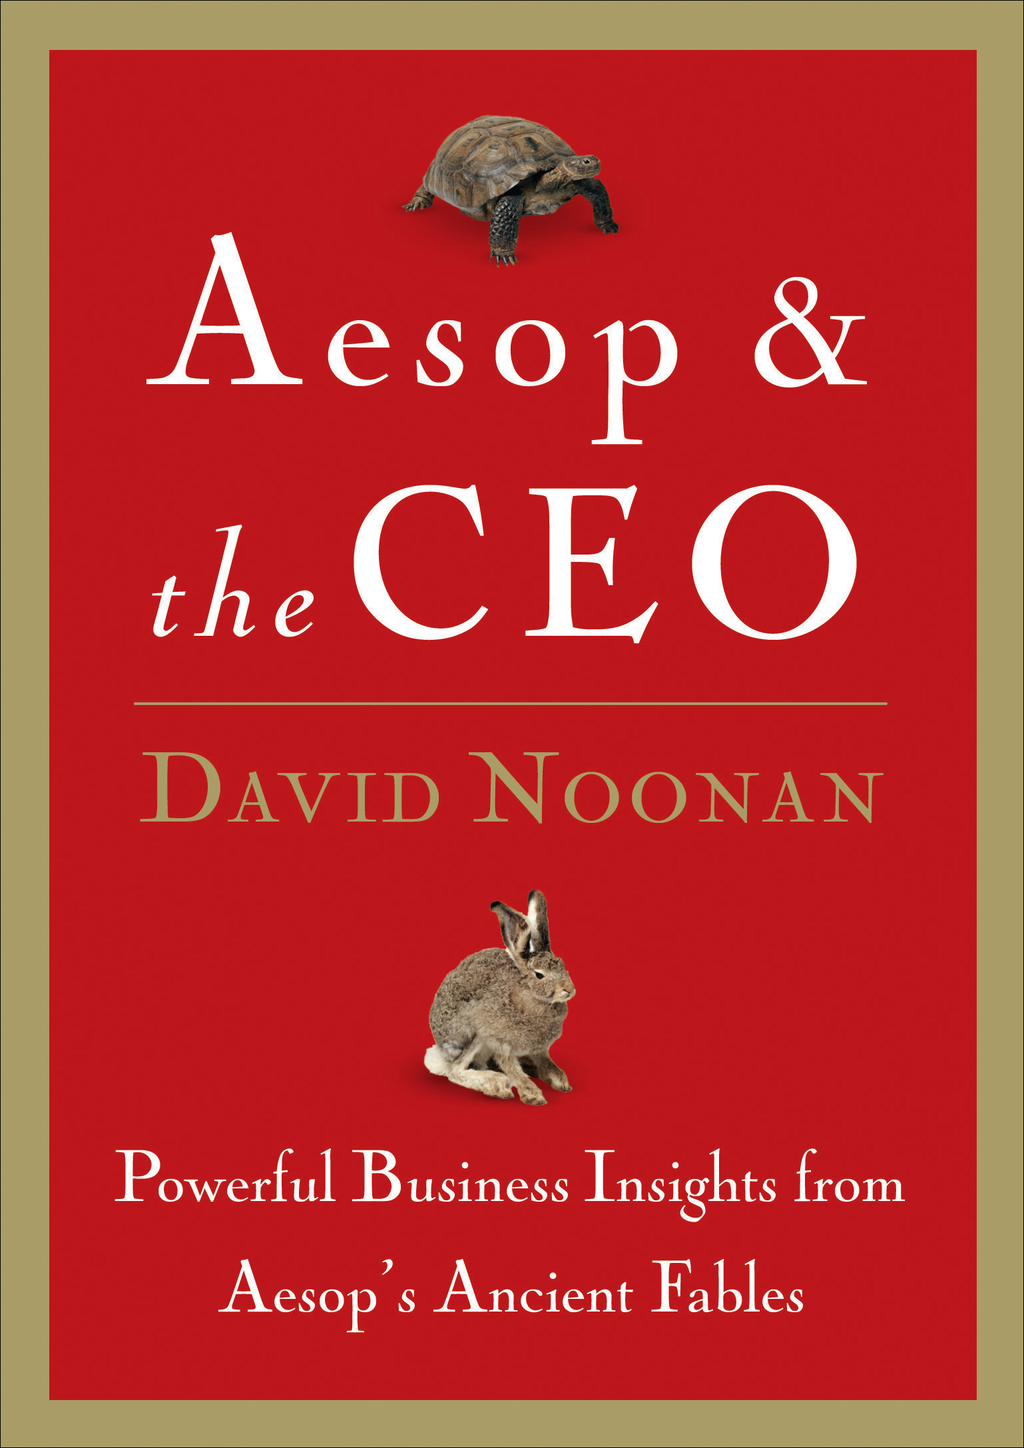 Aesop and the CEO